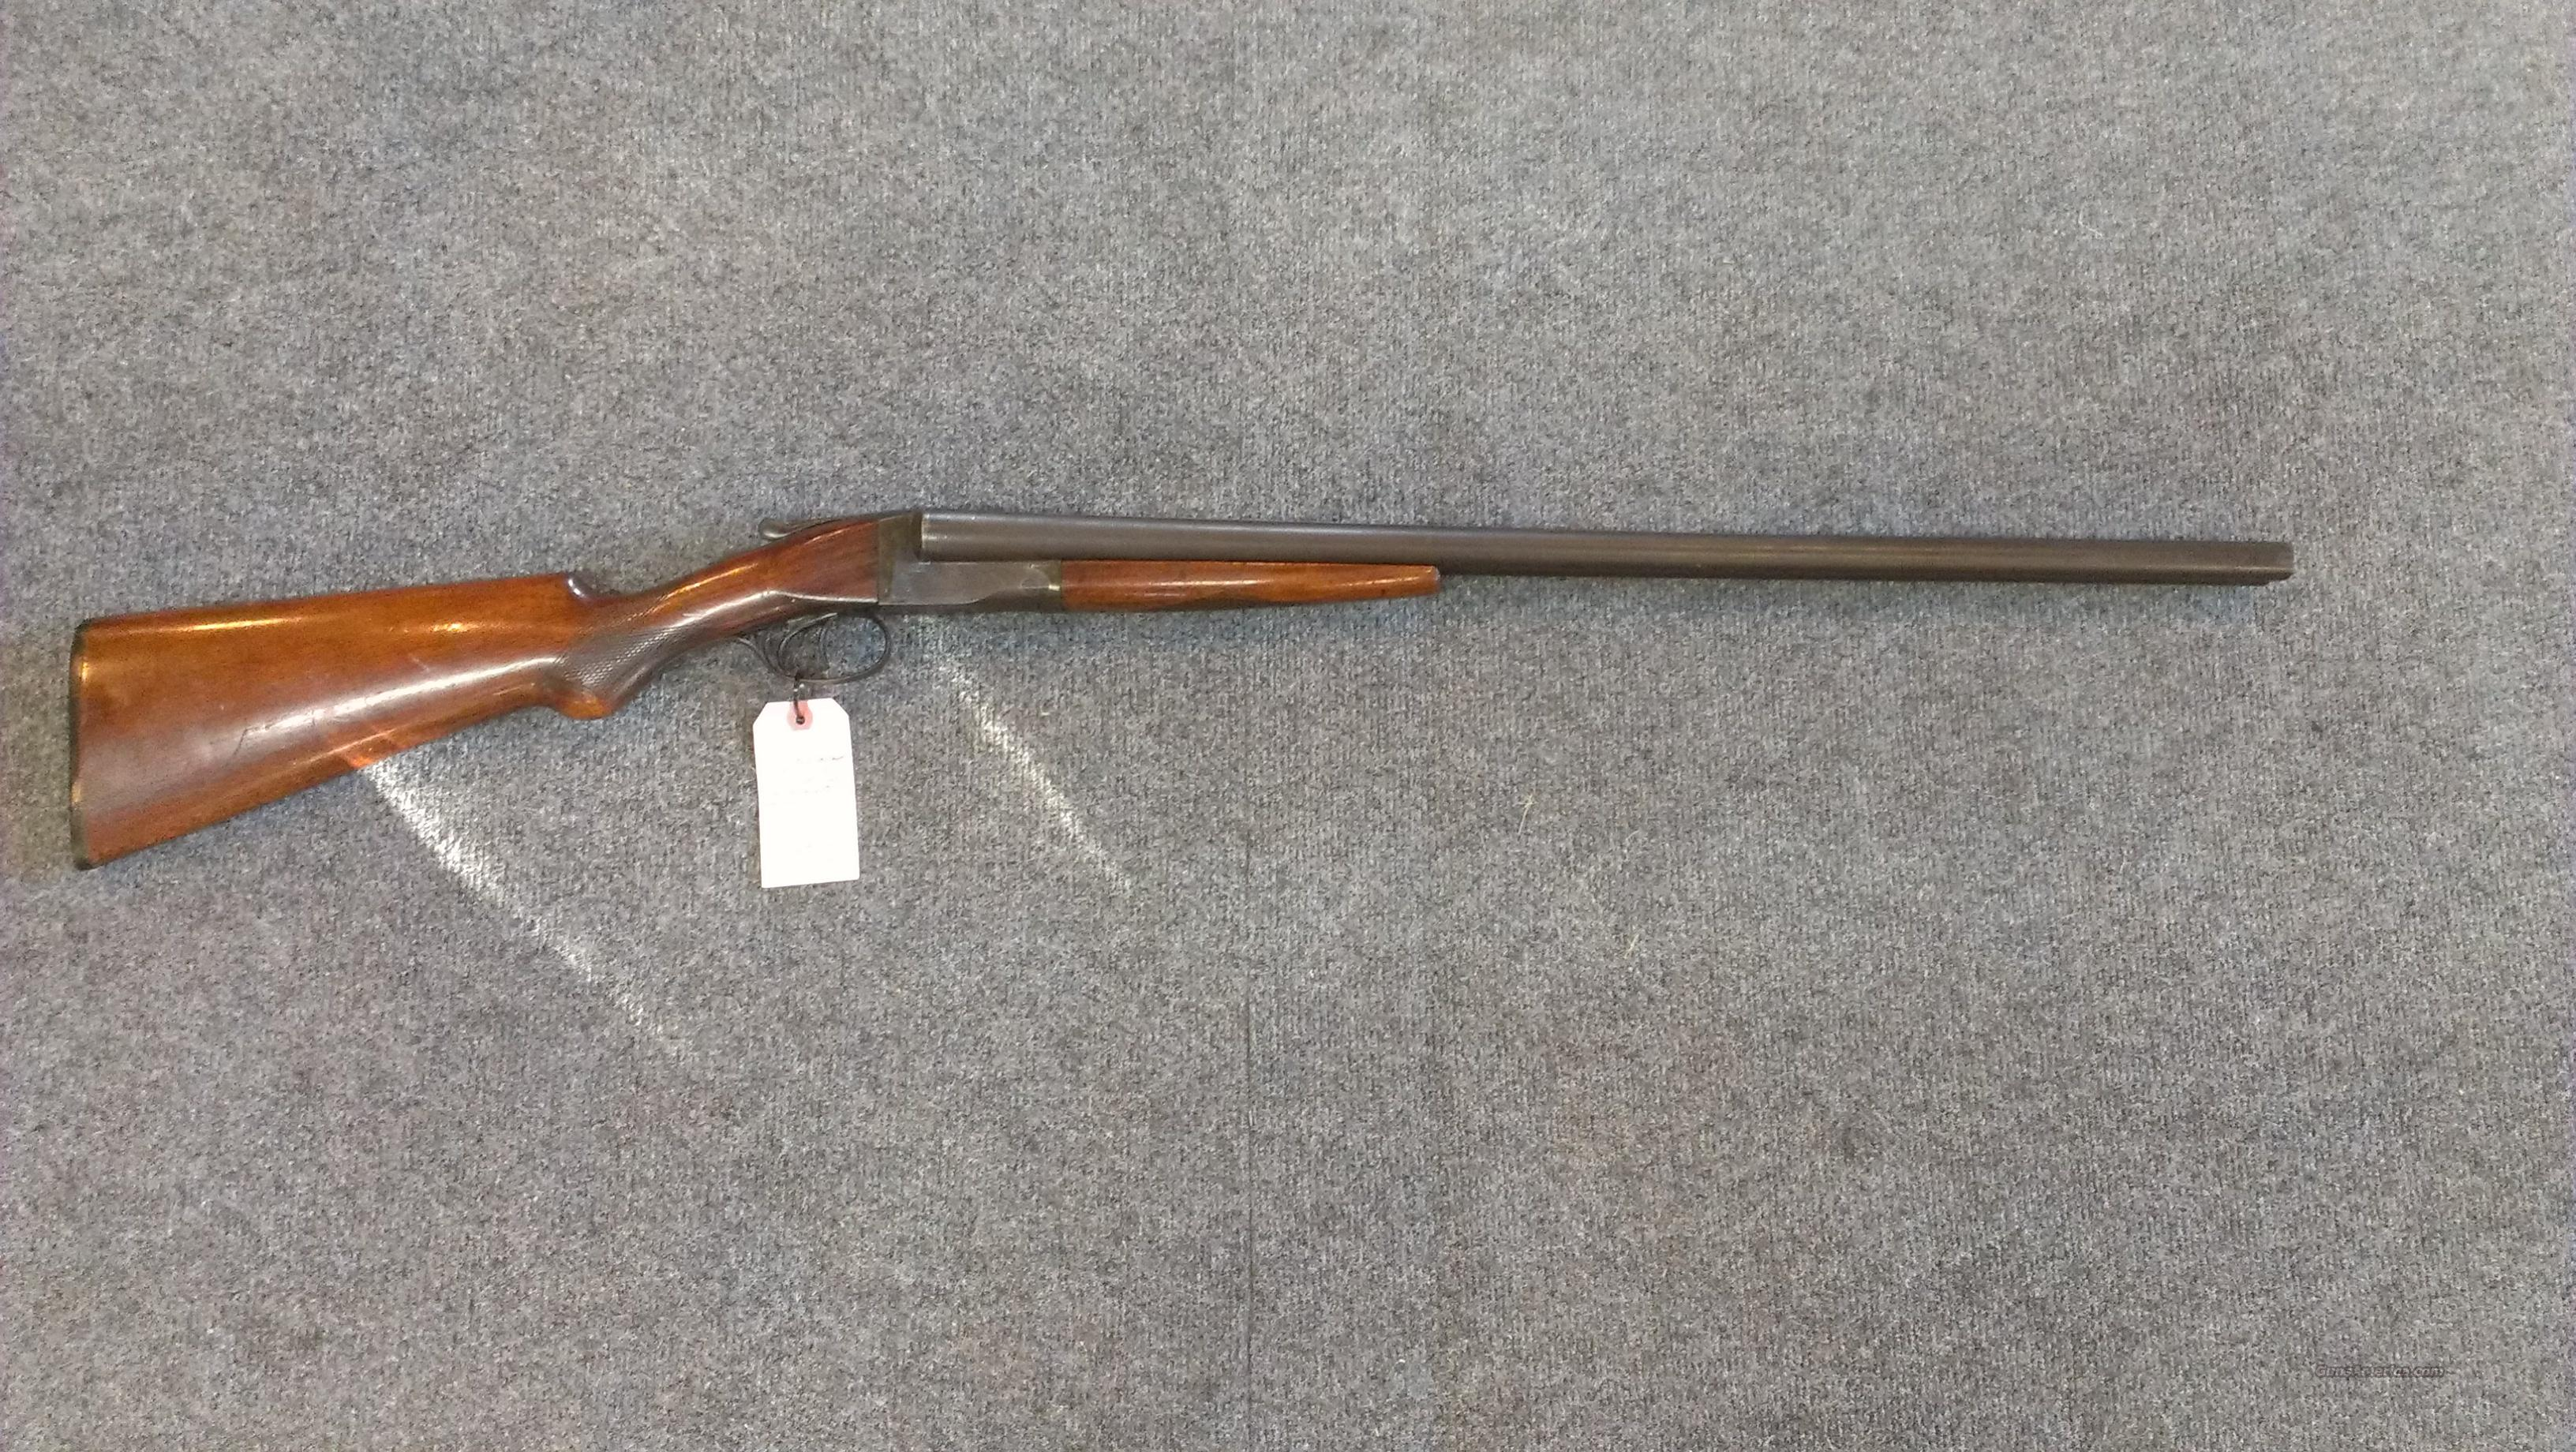 Hunter Arms Model Fulton Double Barrel SxS 12 Gauge  Guns > Shotguns > L.C. Smith Shotguns